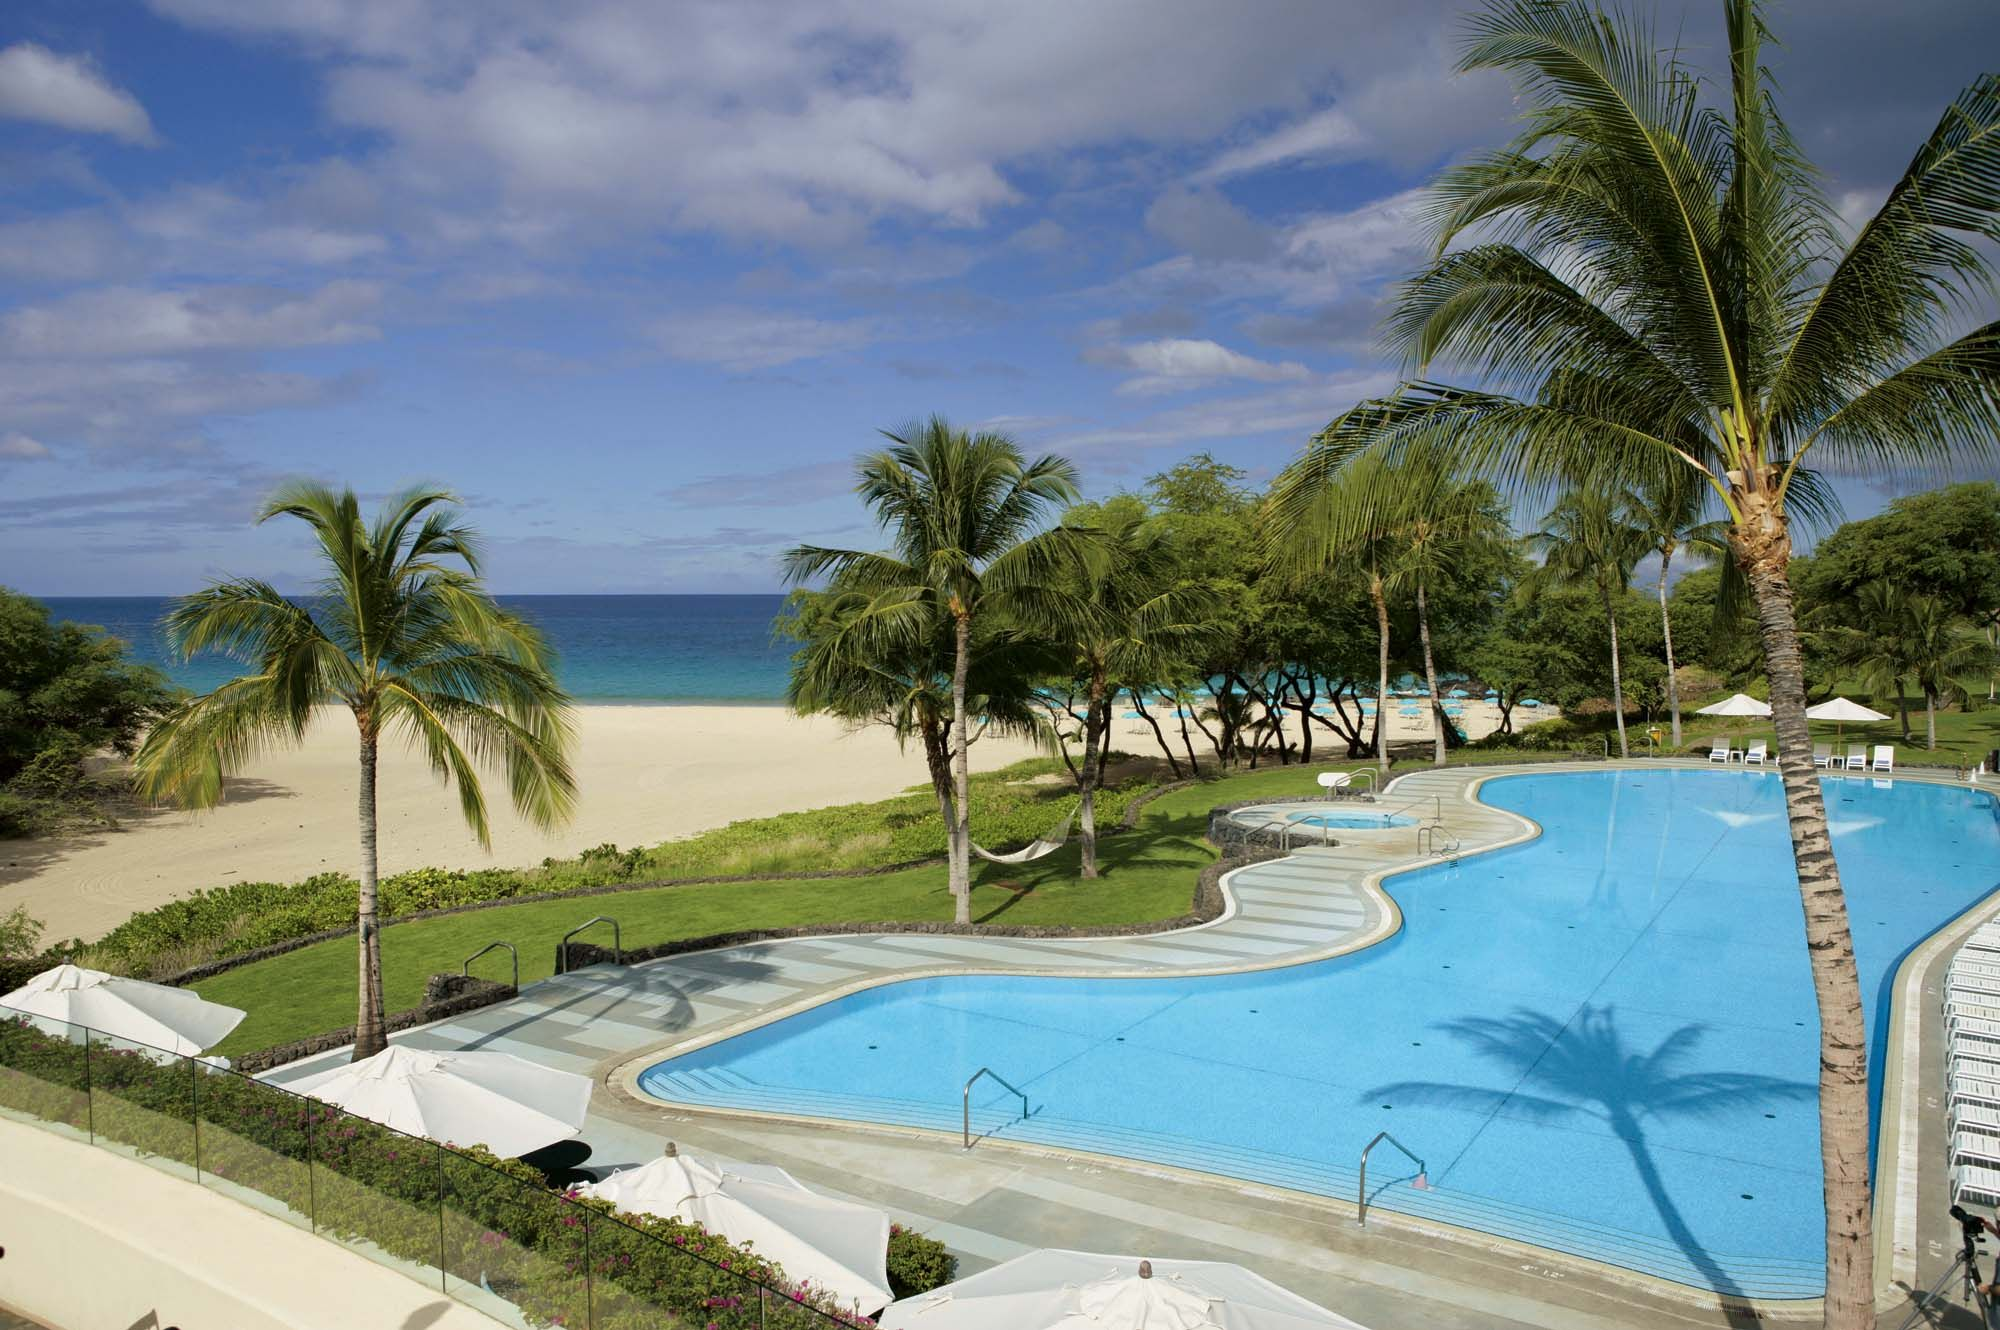 Discover The Hapuna Beach Prince Hotel Hawaii With My Package Deals Packed Exclusive Inclusions Flightuch More